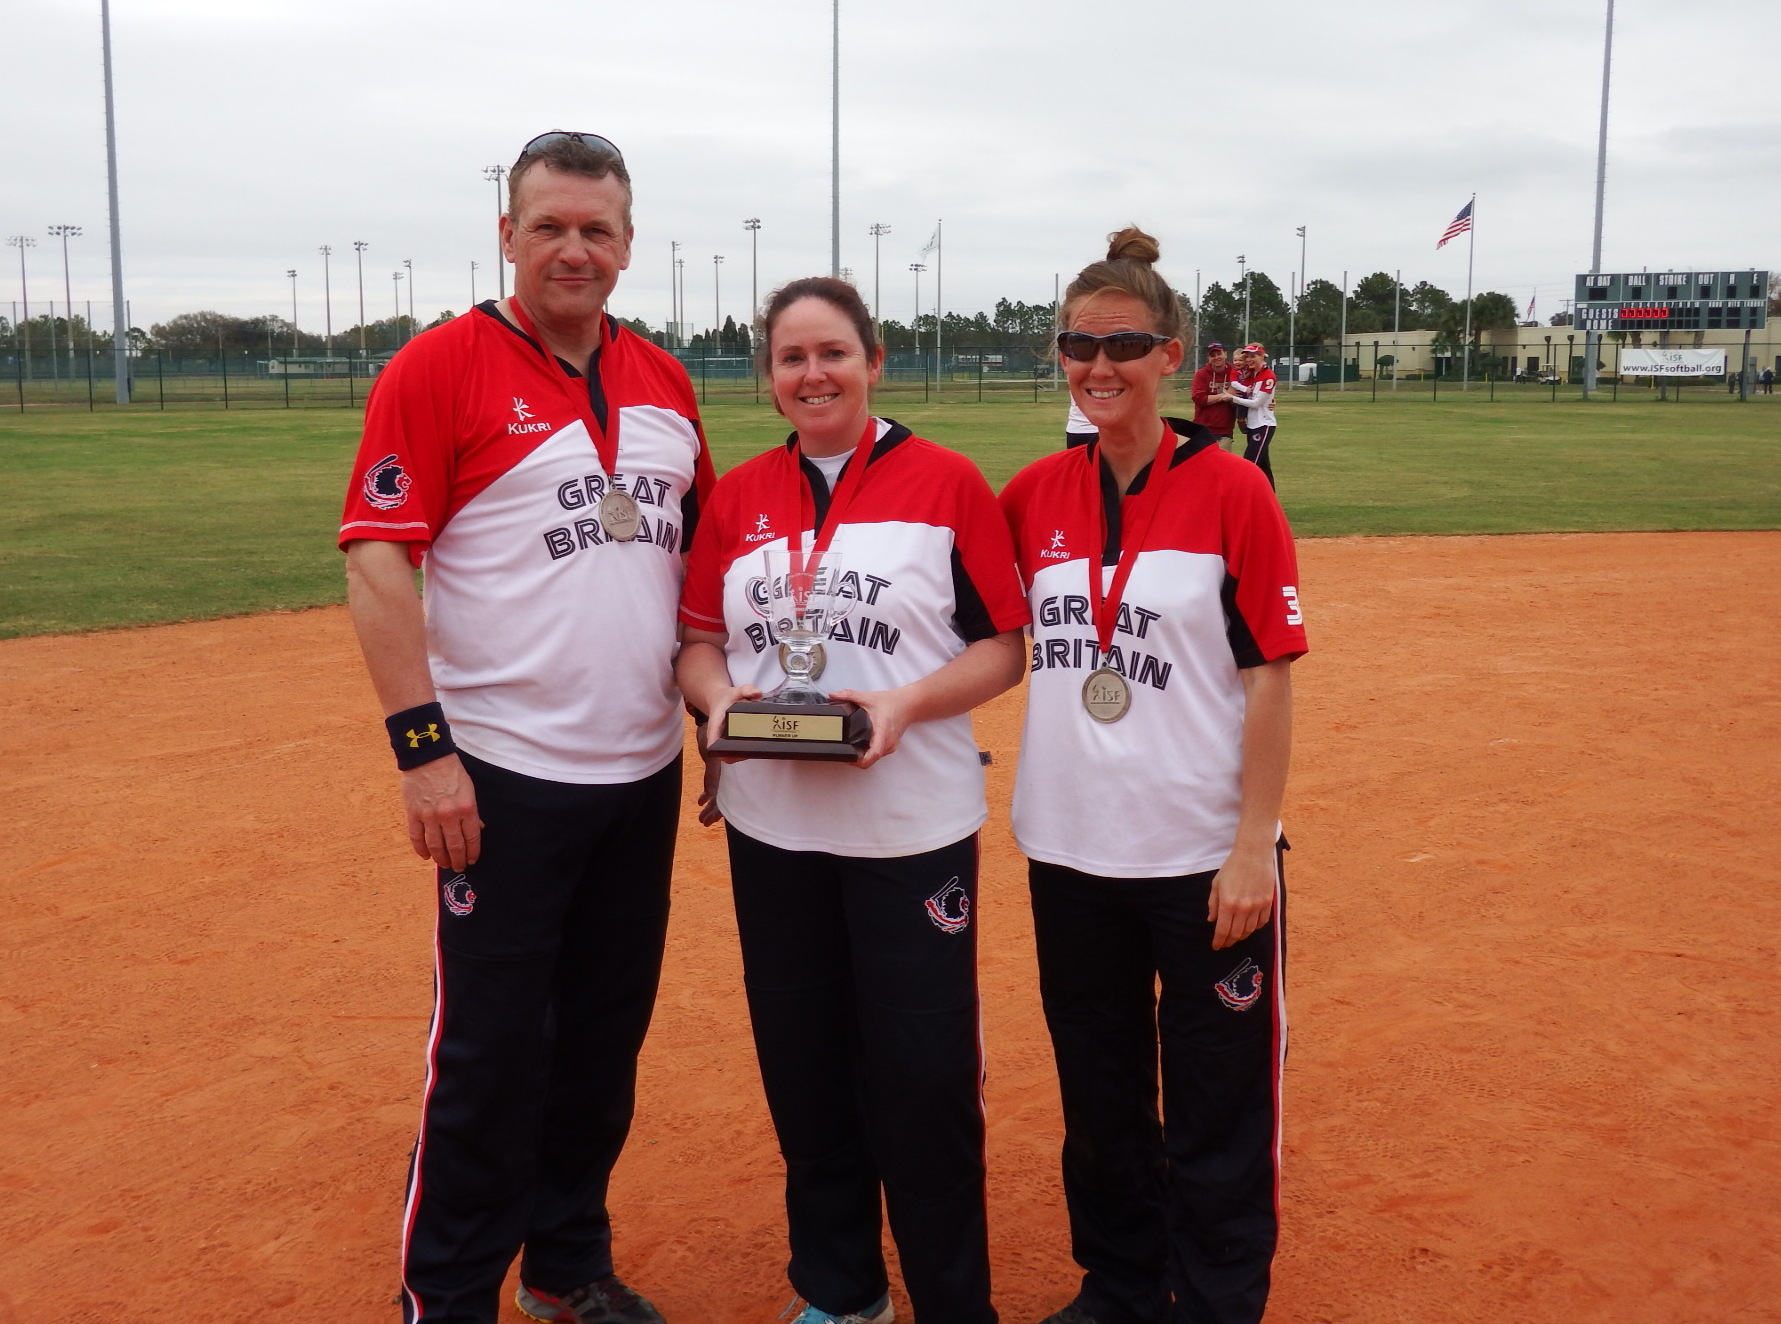 Bristol Players and Umpires featured heavily in the recent Slowpitch Softball  World cup in Plant City Florida, USA. Katherine Golik, Kirstie Leach […]